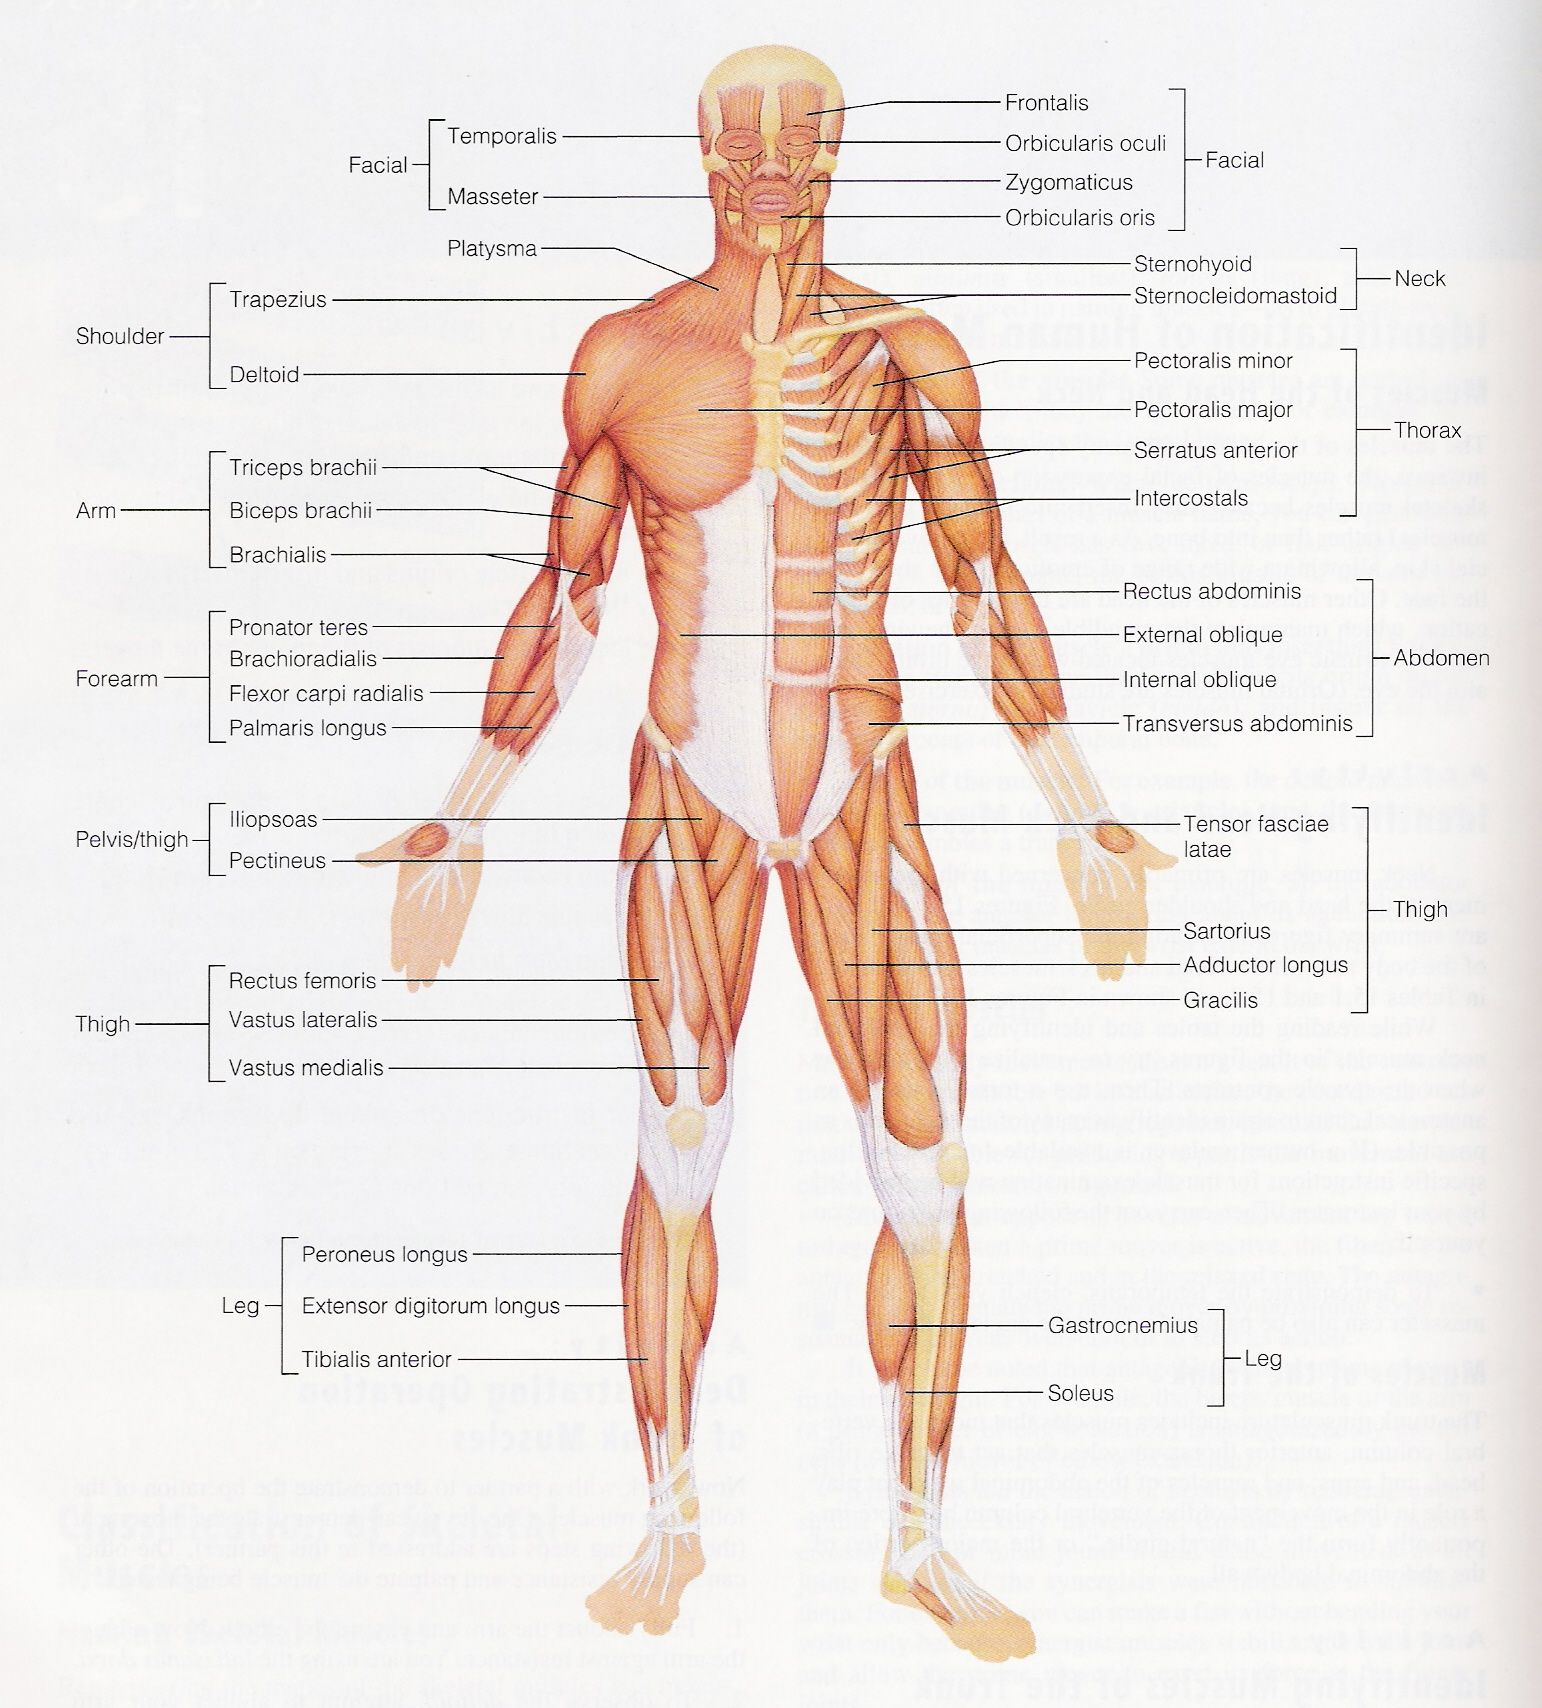 Skeletal Muscle Structure Unlabeled Diagram Of The Muscle System Hd